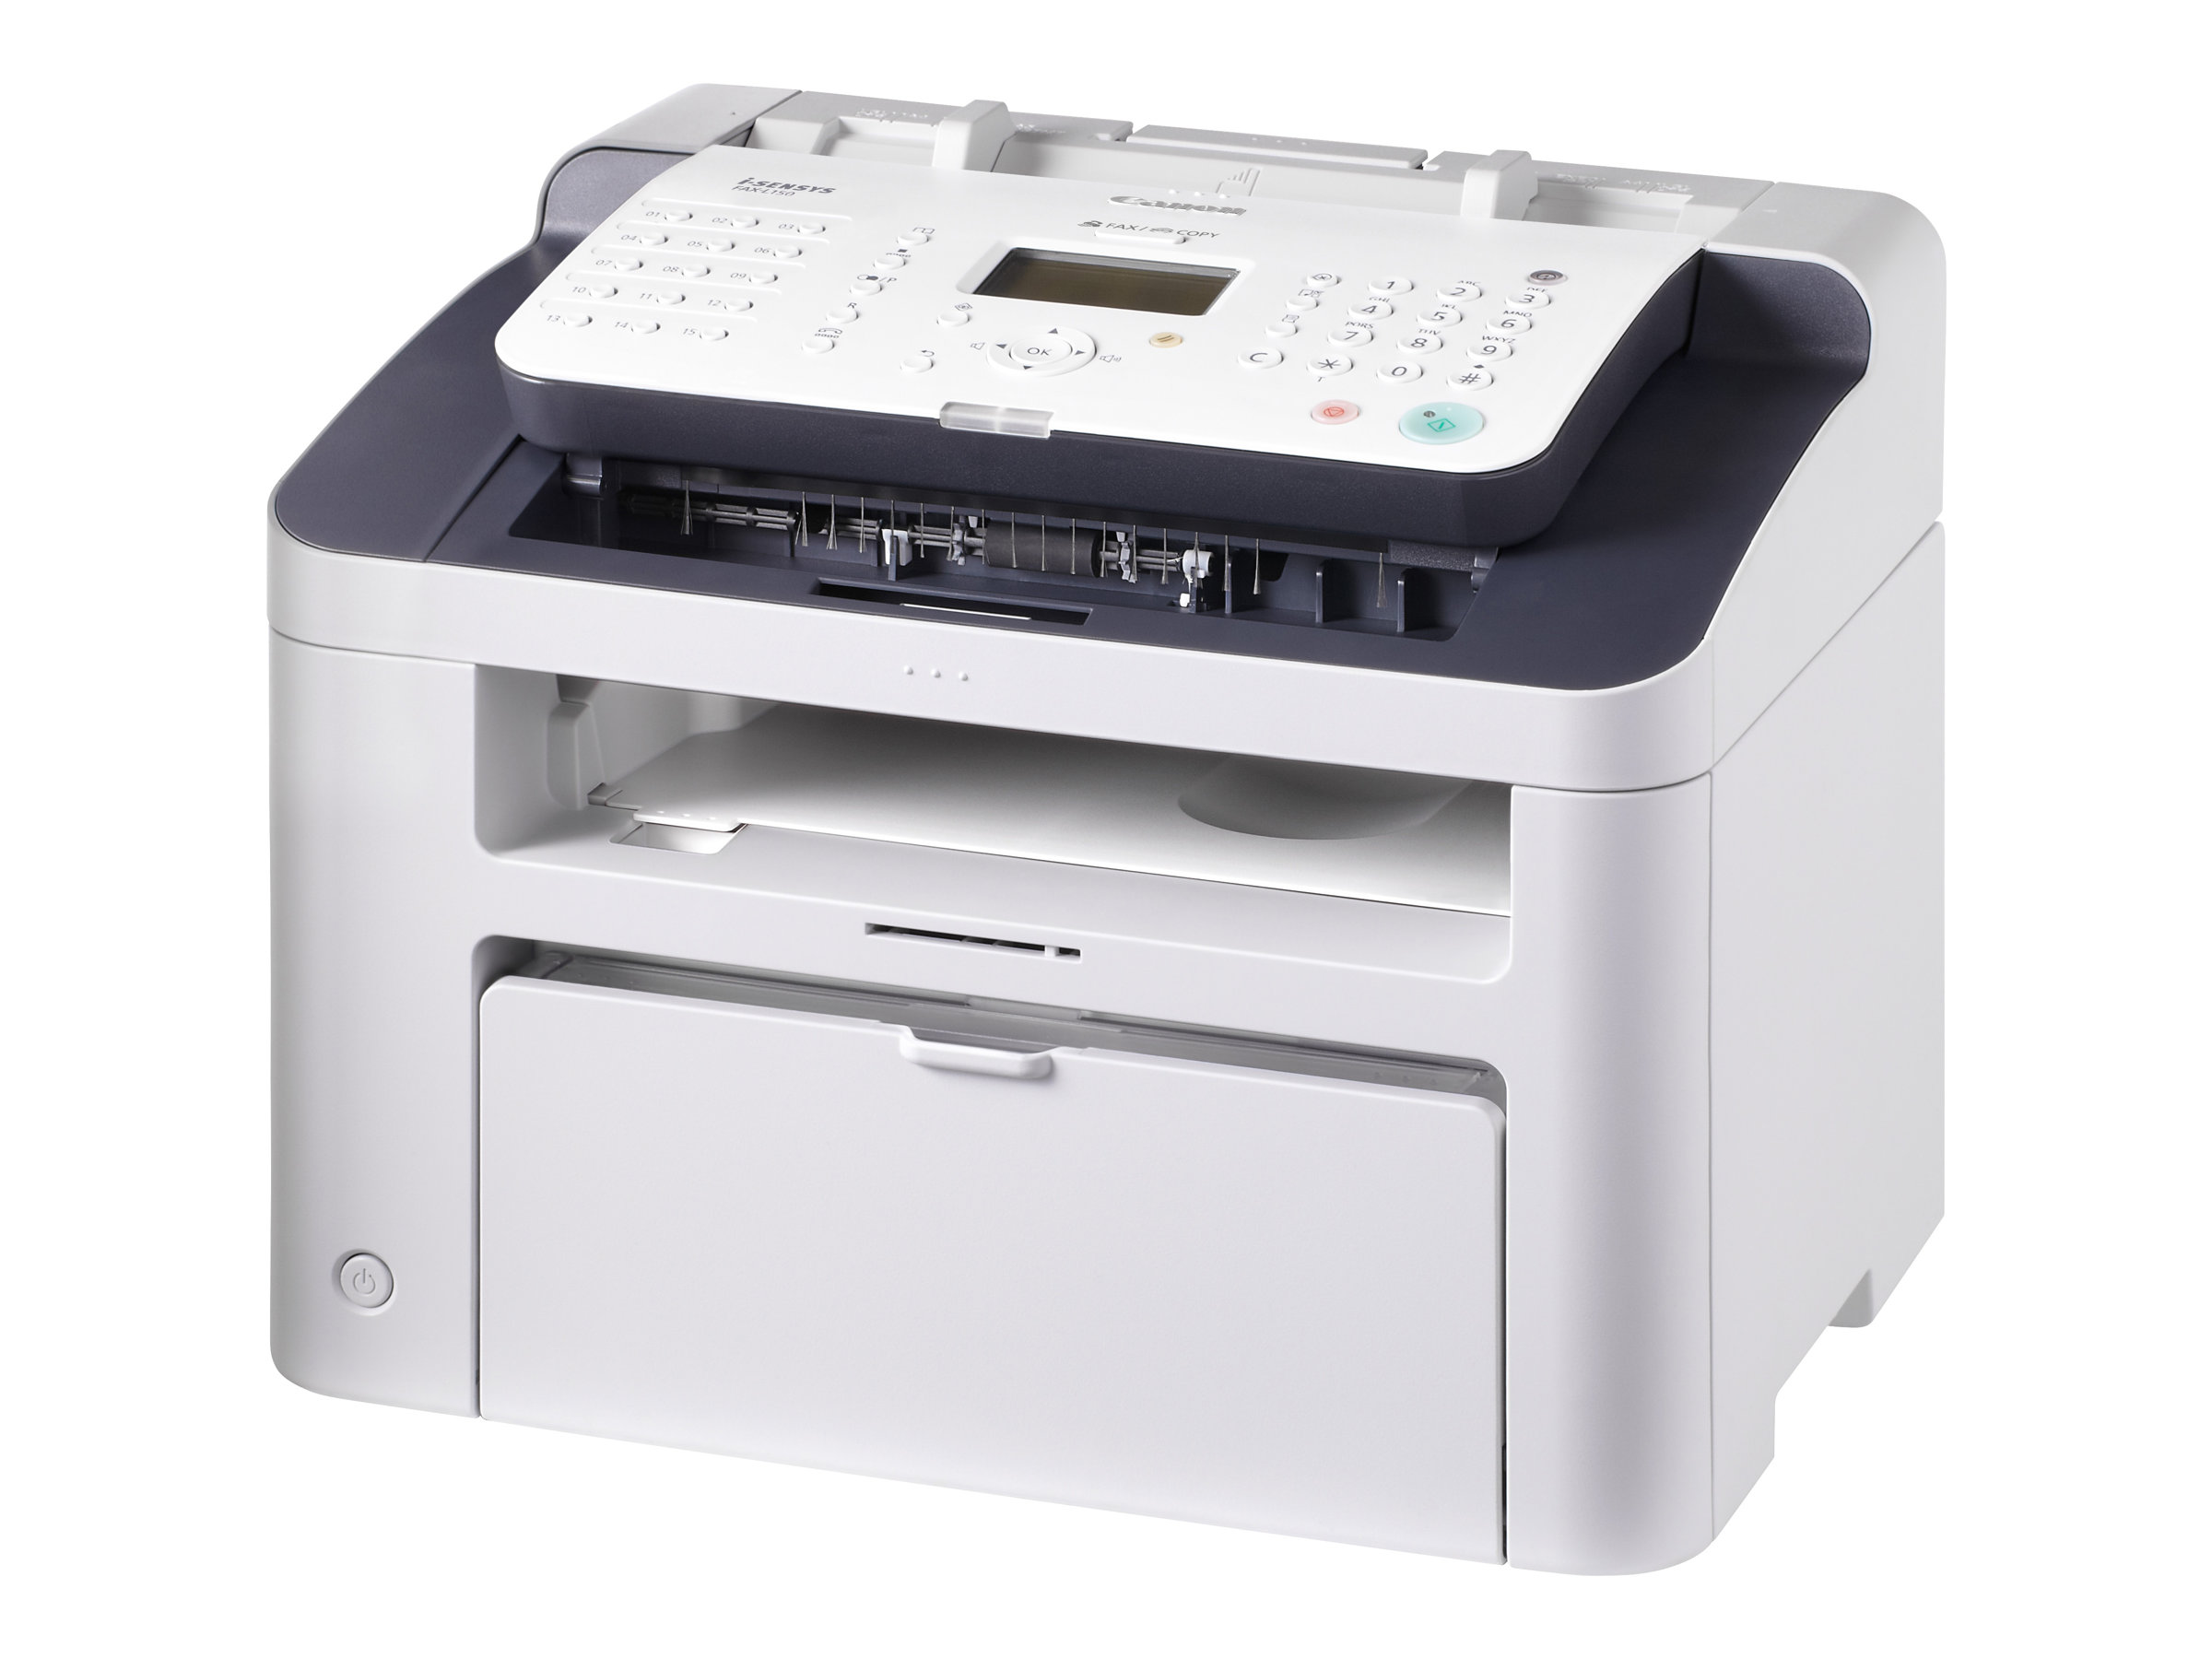 Canon i-SENSYS FAX-L150 - Multifunktionsdrucker - s/w - Laser - A4 (210 x 297 mm), Legal (216 x 356 mm) (Original) - A4/Legal (Medien)